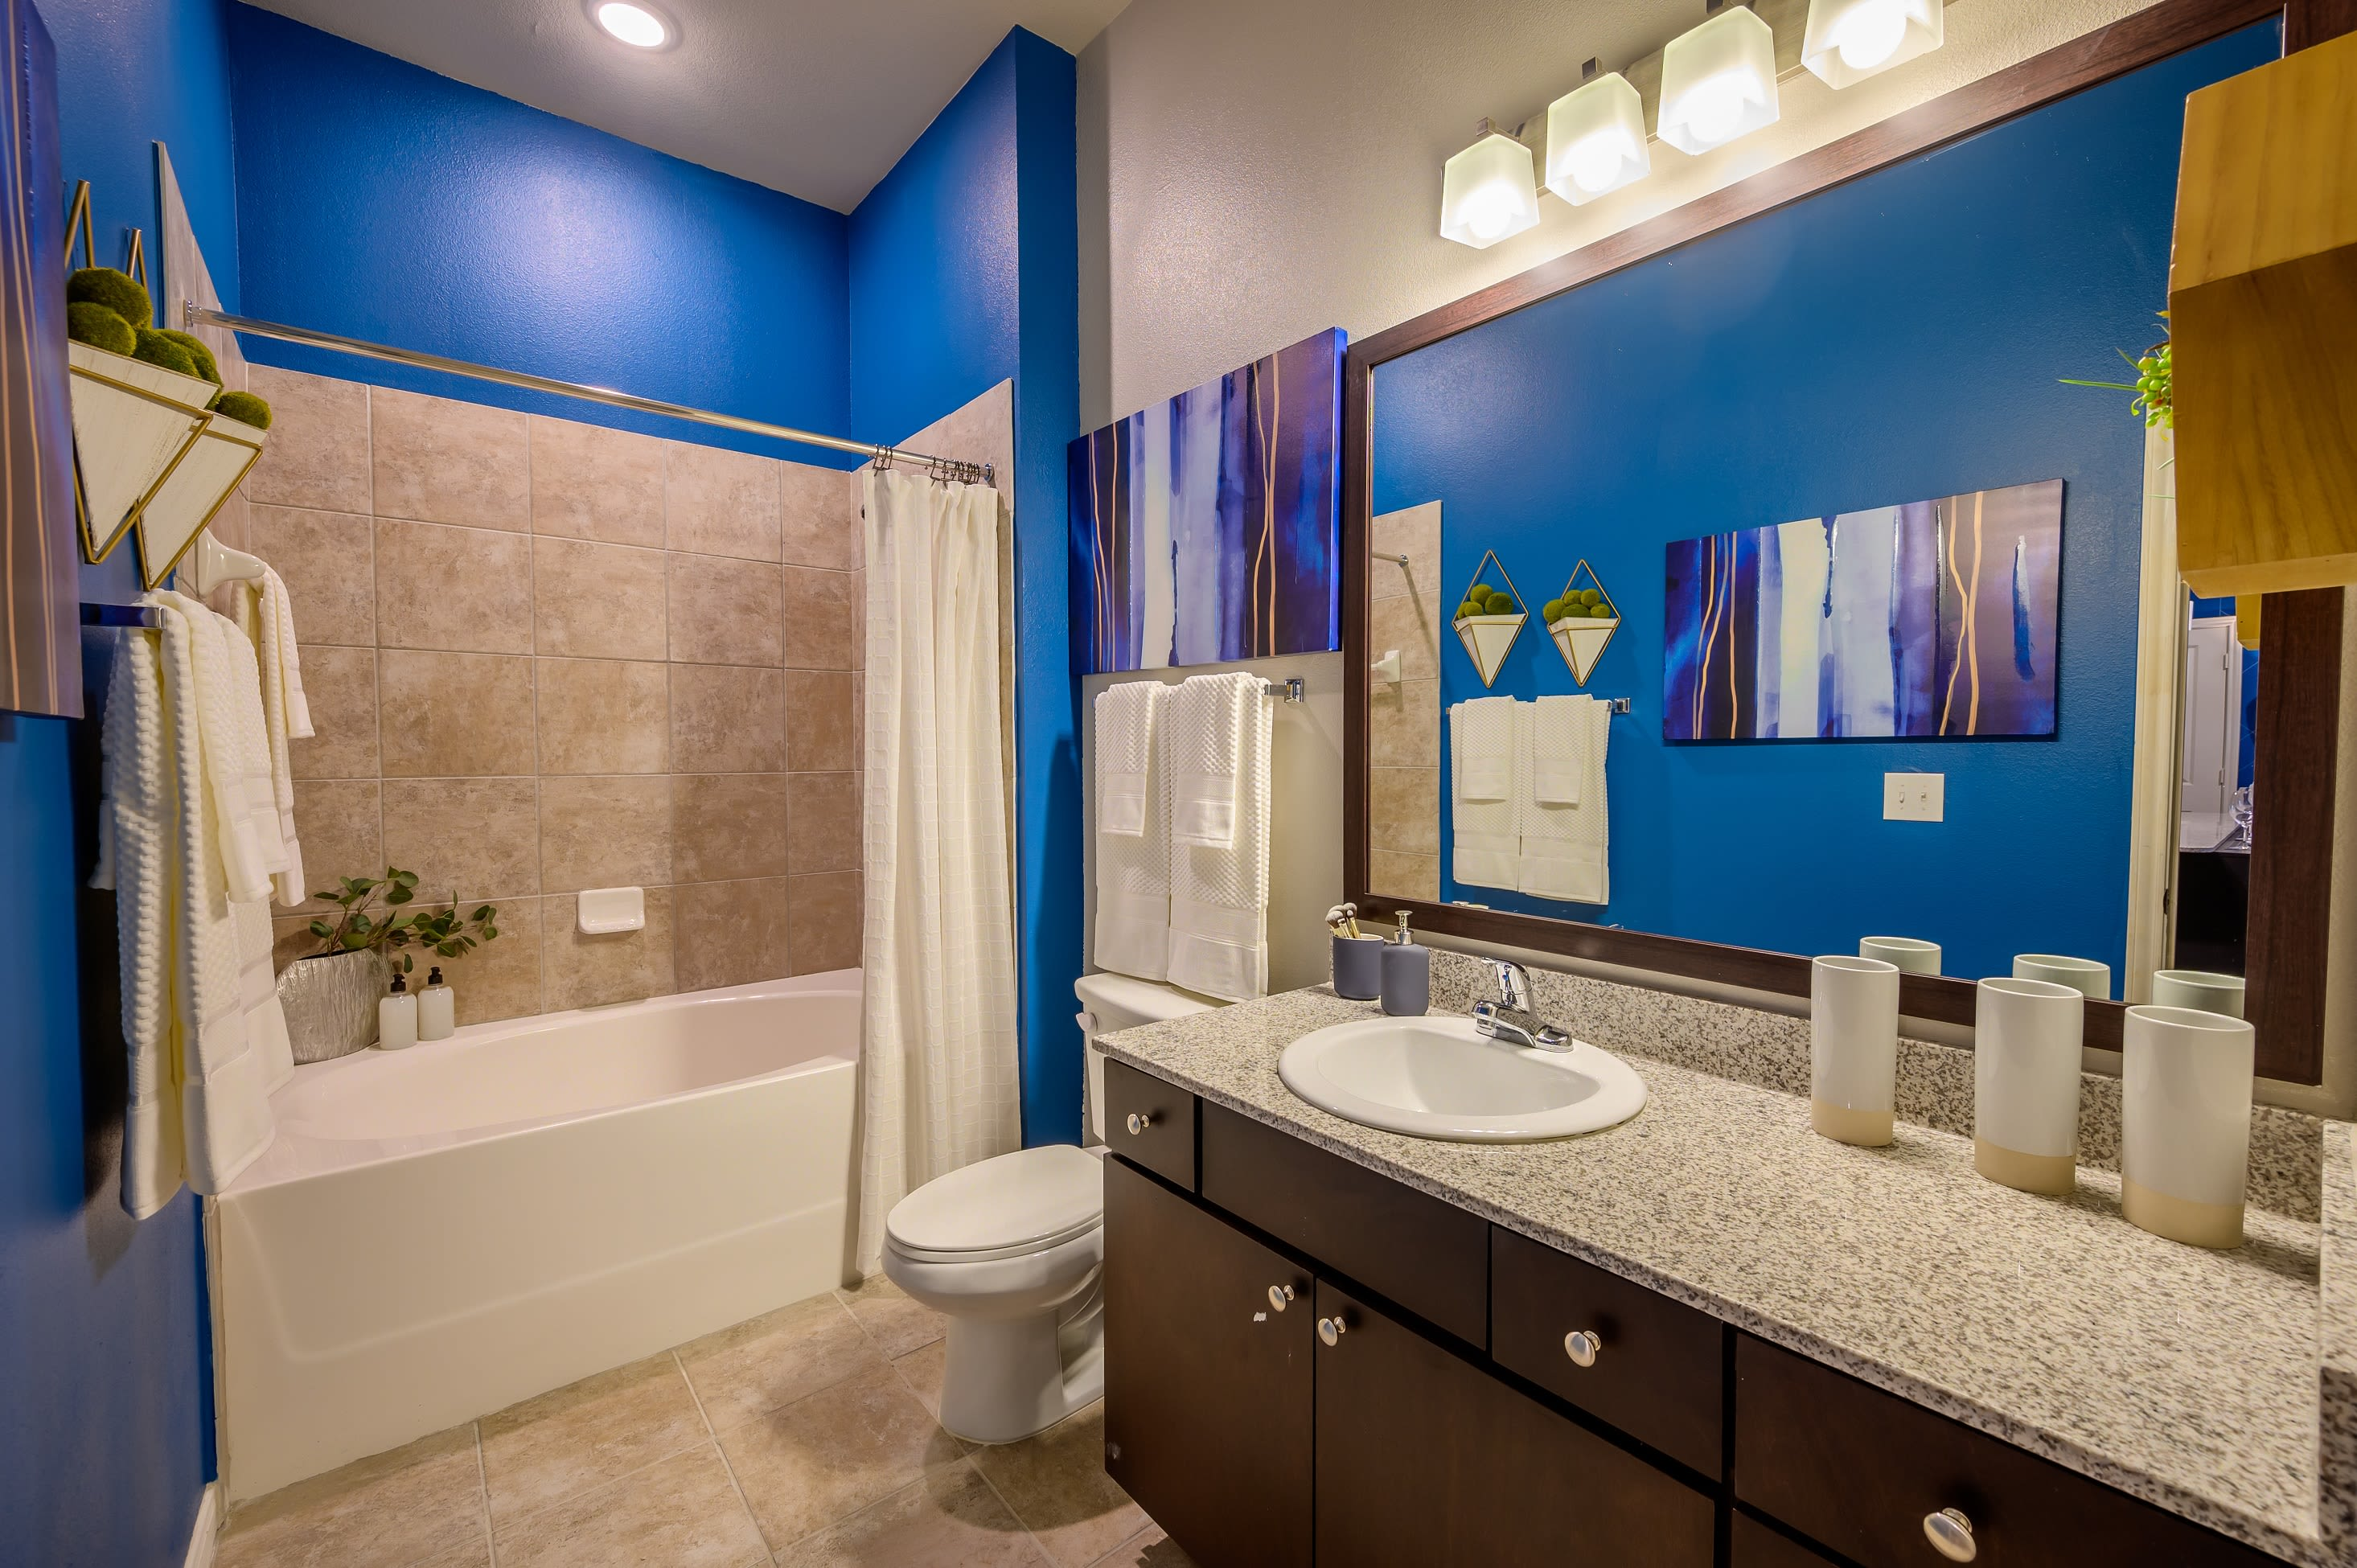 Bathroom at Aspire at 610 in Houston, Texas